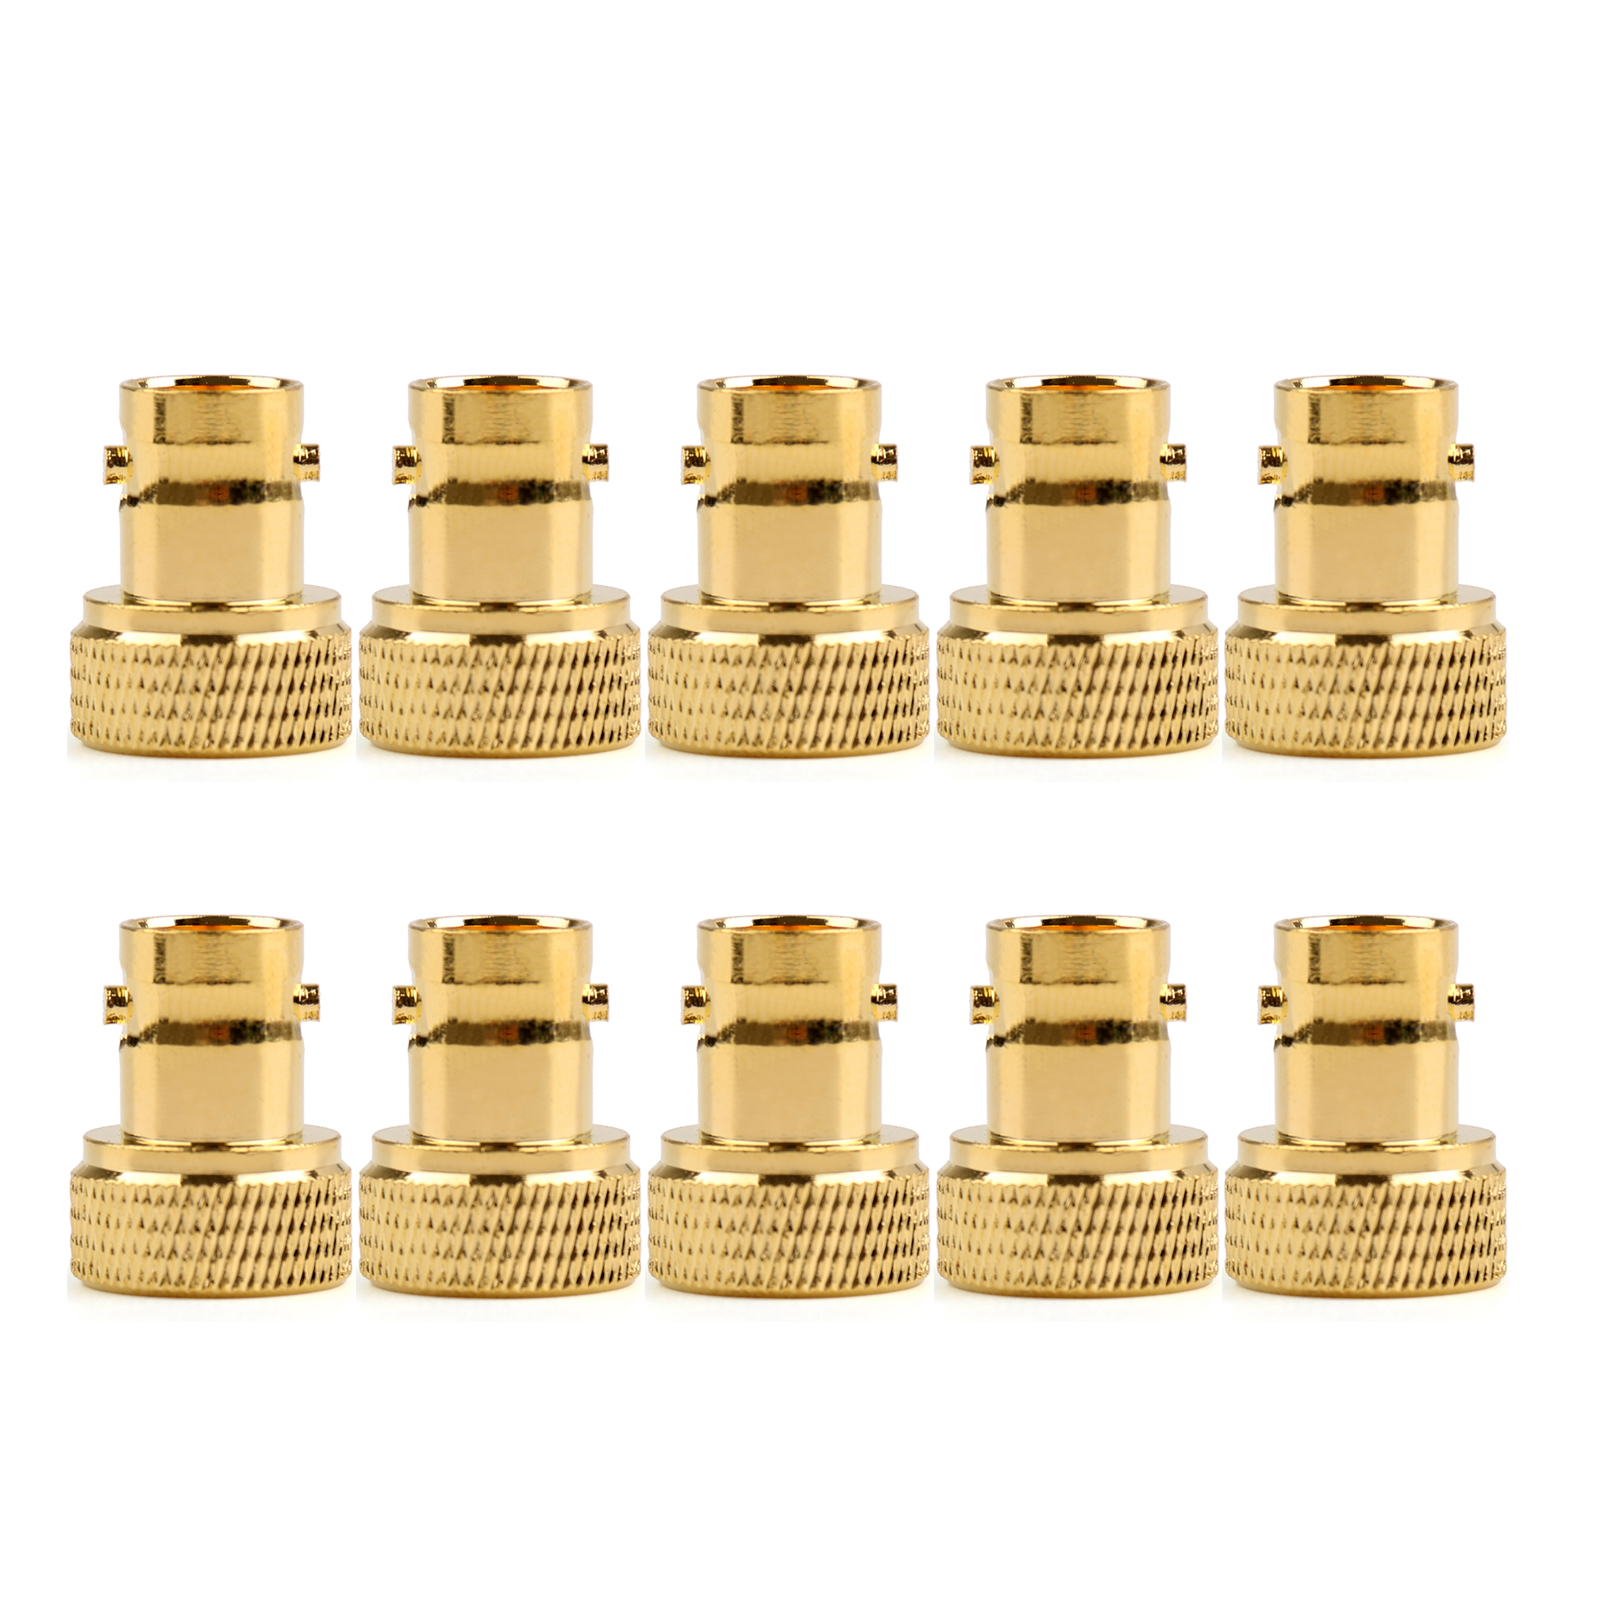 Details about 10Pc Adapter BNC Female Jack To SMA Male Plug RF Connector Gold Plating F/M